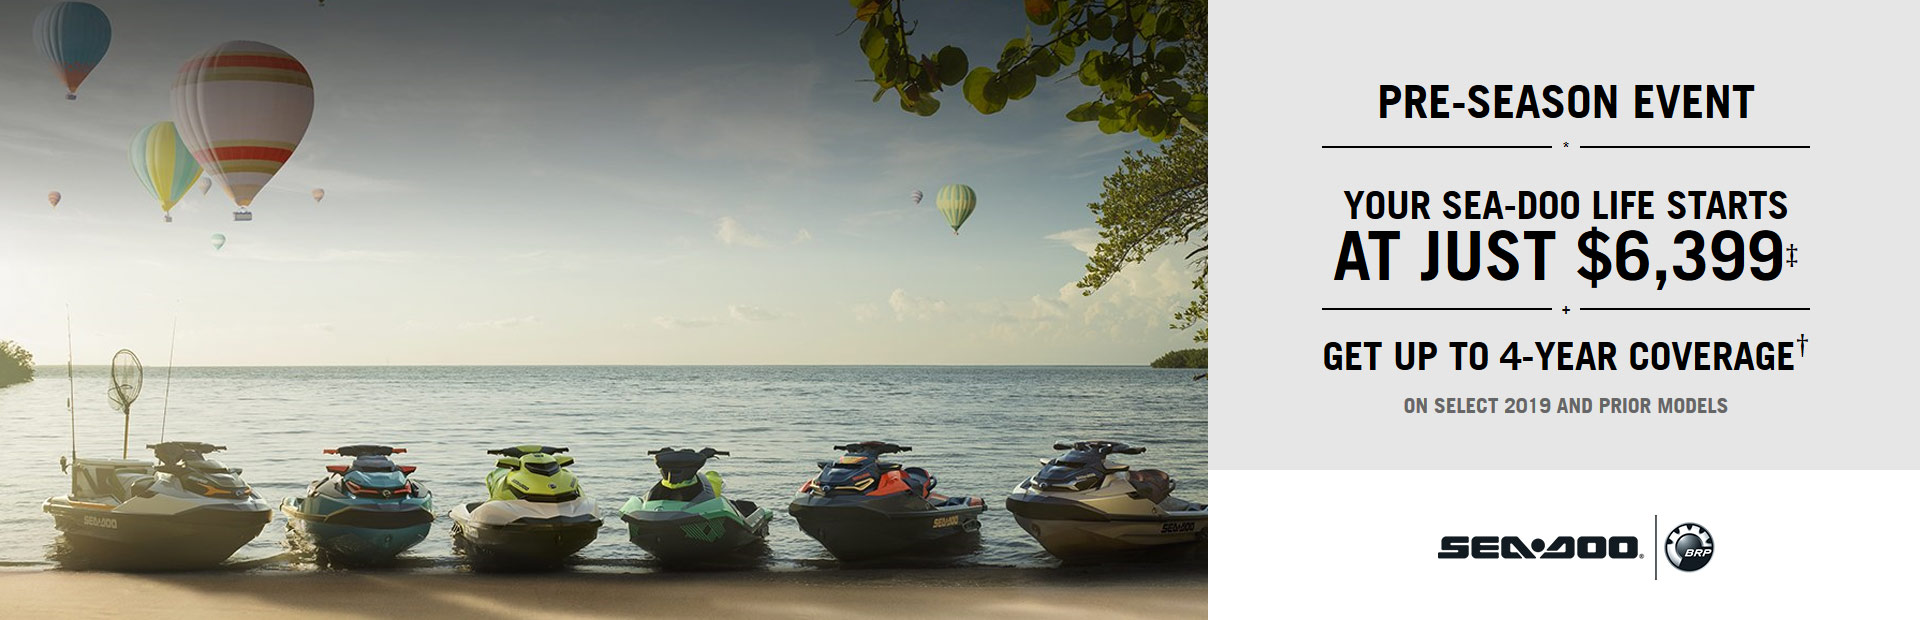 Sea-Doo: Sea-Doo Pre-Season Event